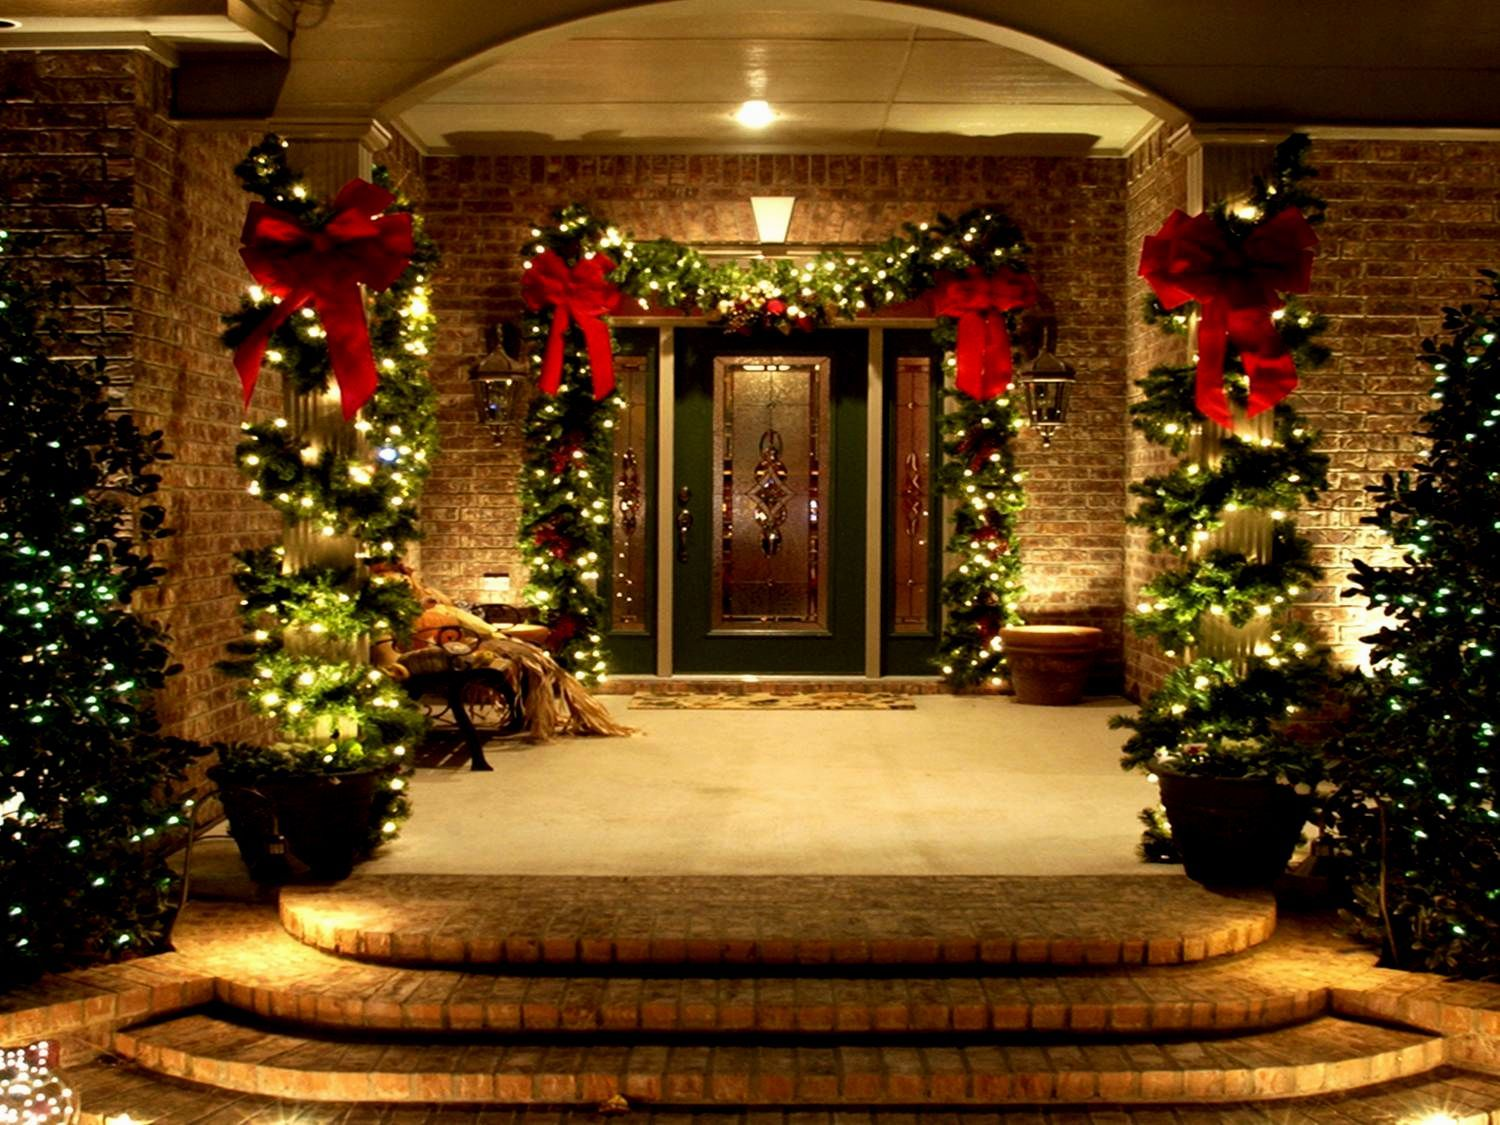 porch lighting ideas. Christmas Exterior Lighting Ideas. Outdoor Party Decoration Ideas - Decorating Of C Porch